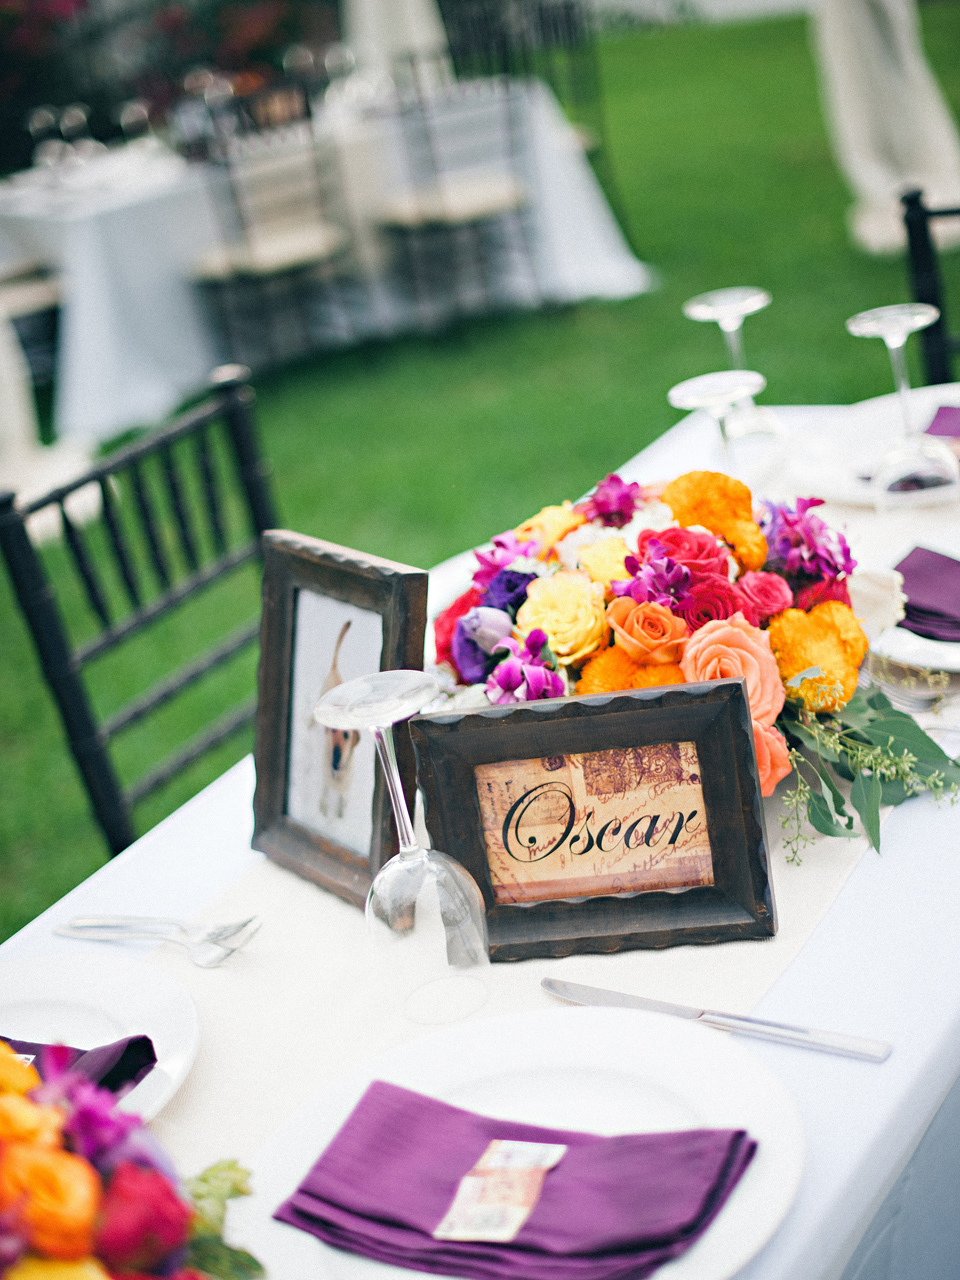 Reception, Flowers & Decor, Destinations, orange, pink, purple, green, Flowers, Table, Destination, Colorful, Beige, Film, Frames, Décor, Sara jeremiah